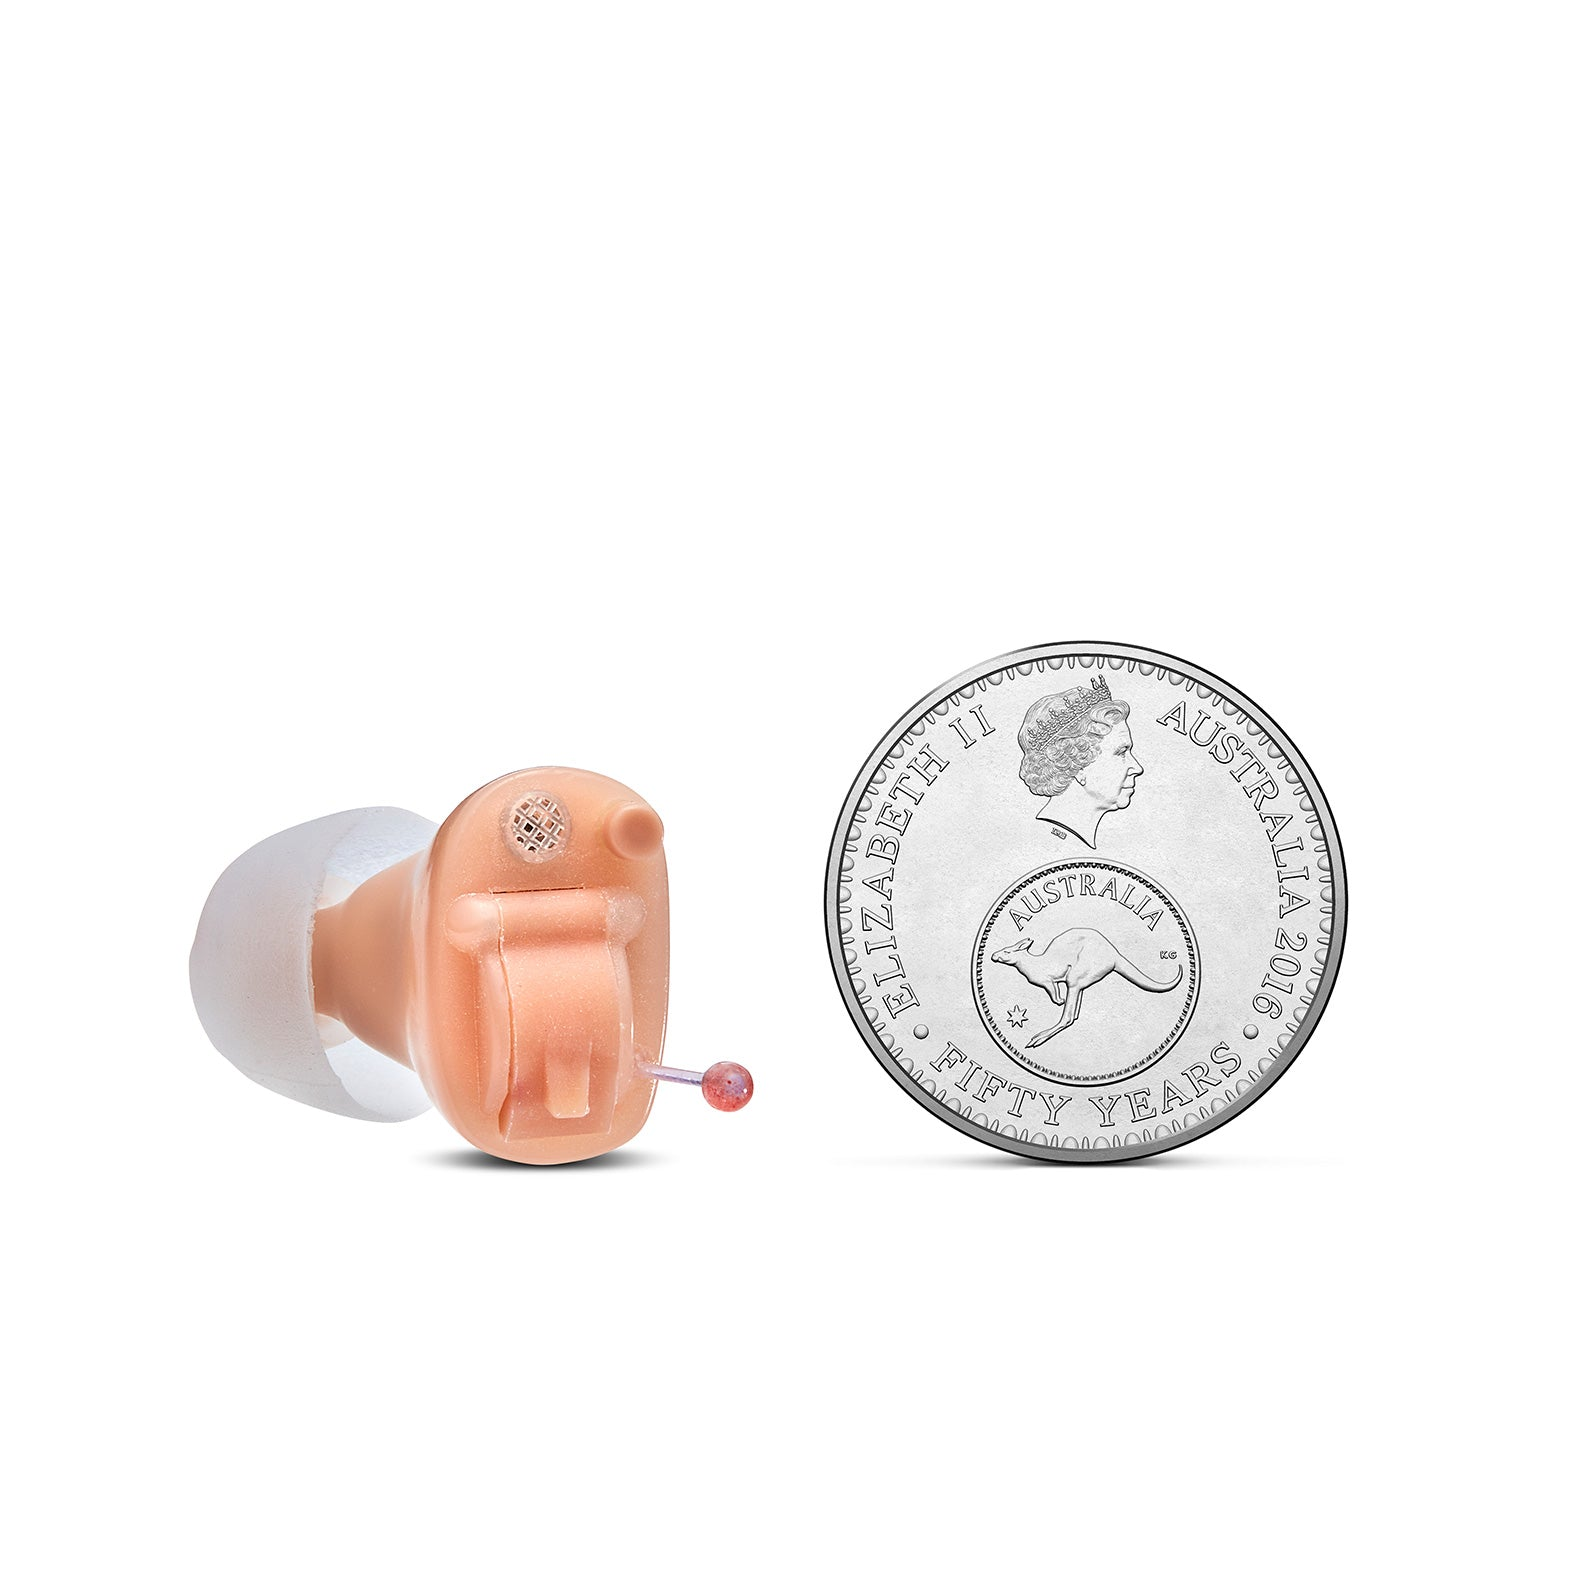 HD 250 Digital Hearing Aid